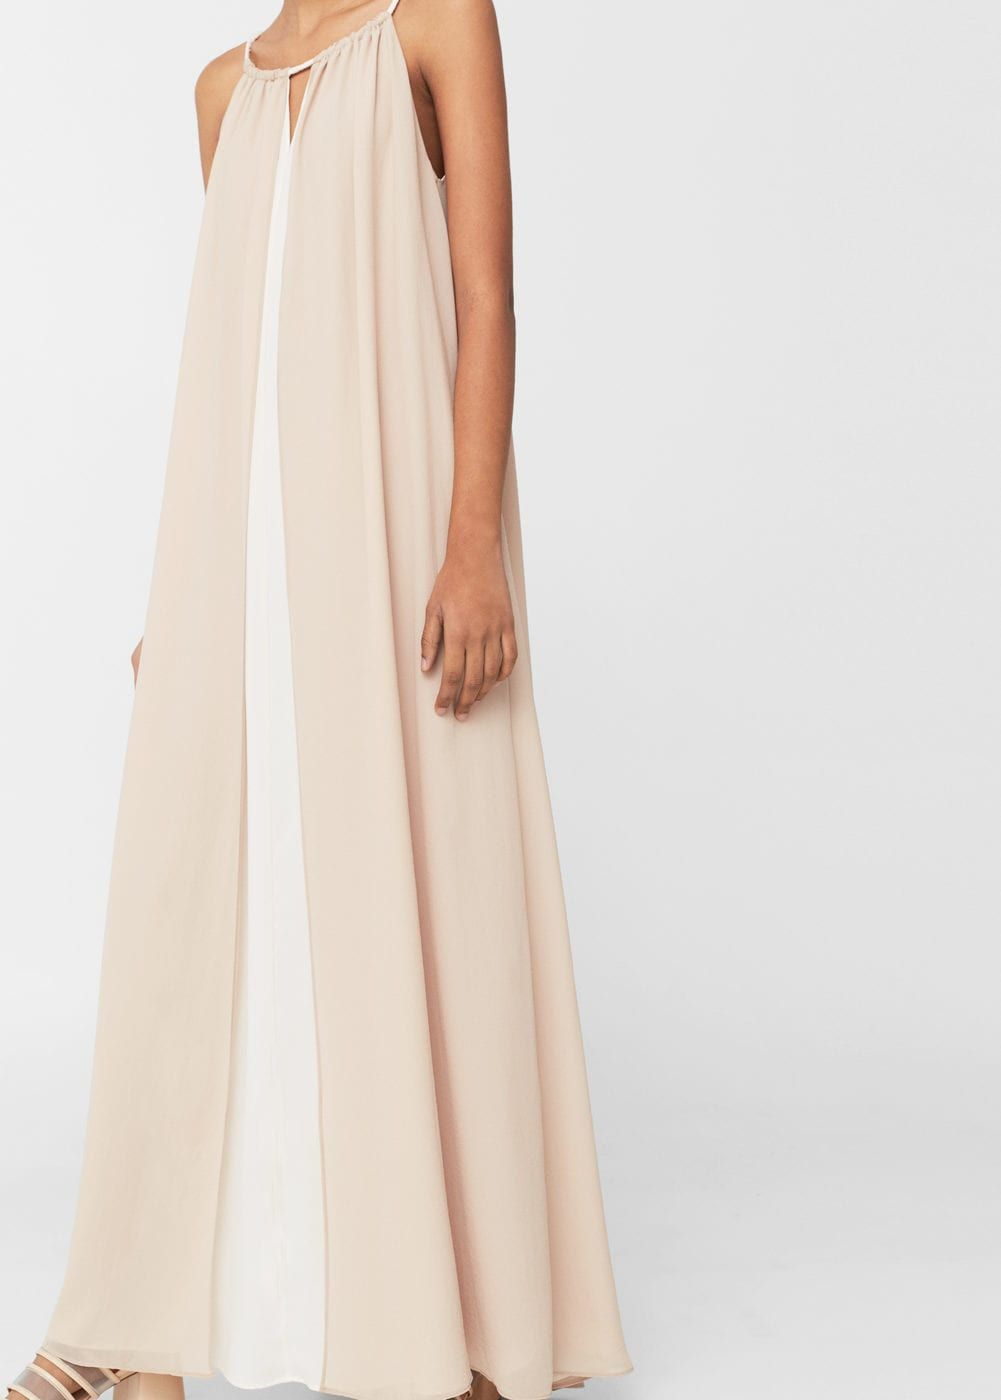 Doublelayer gown layering gowns and woman